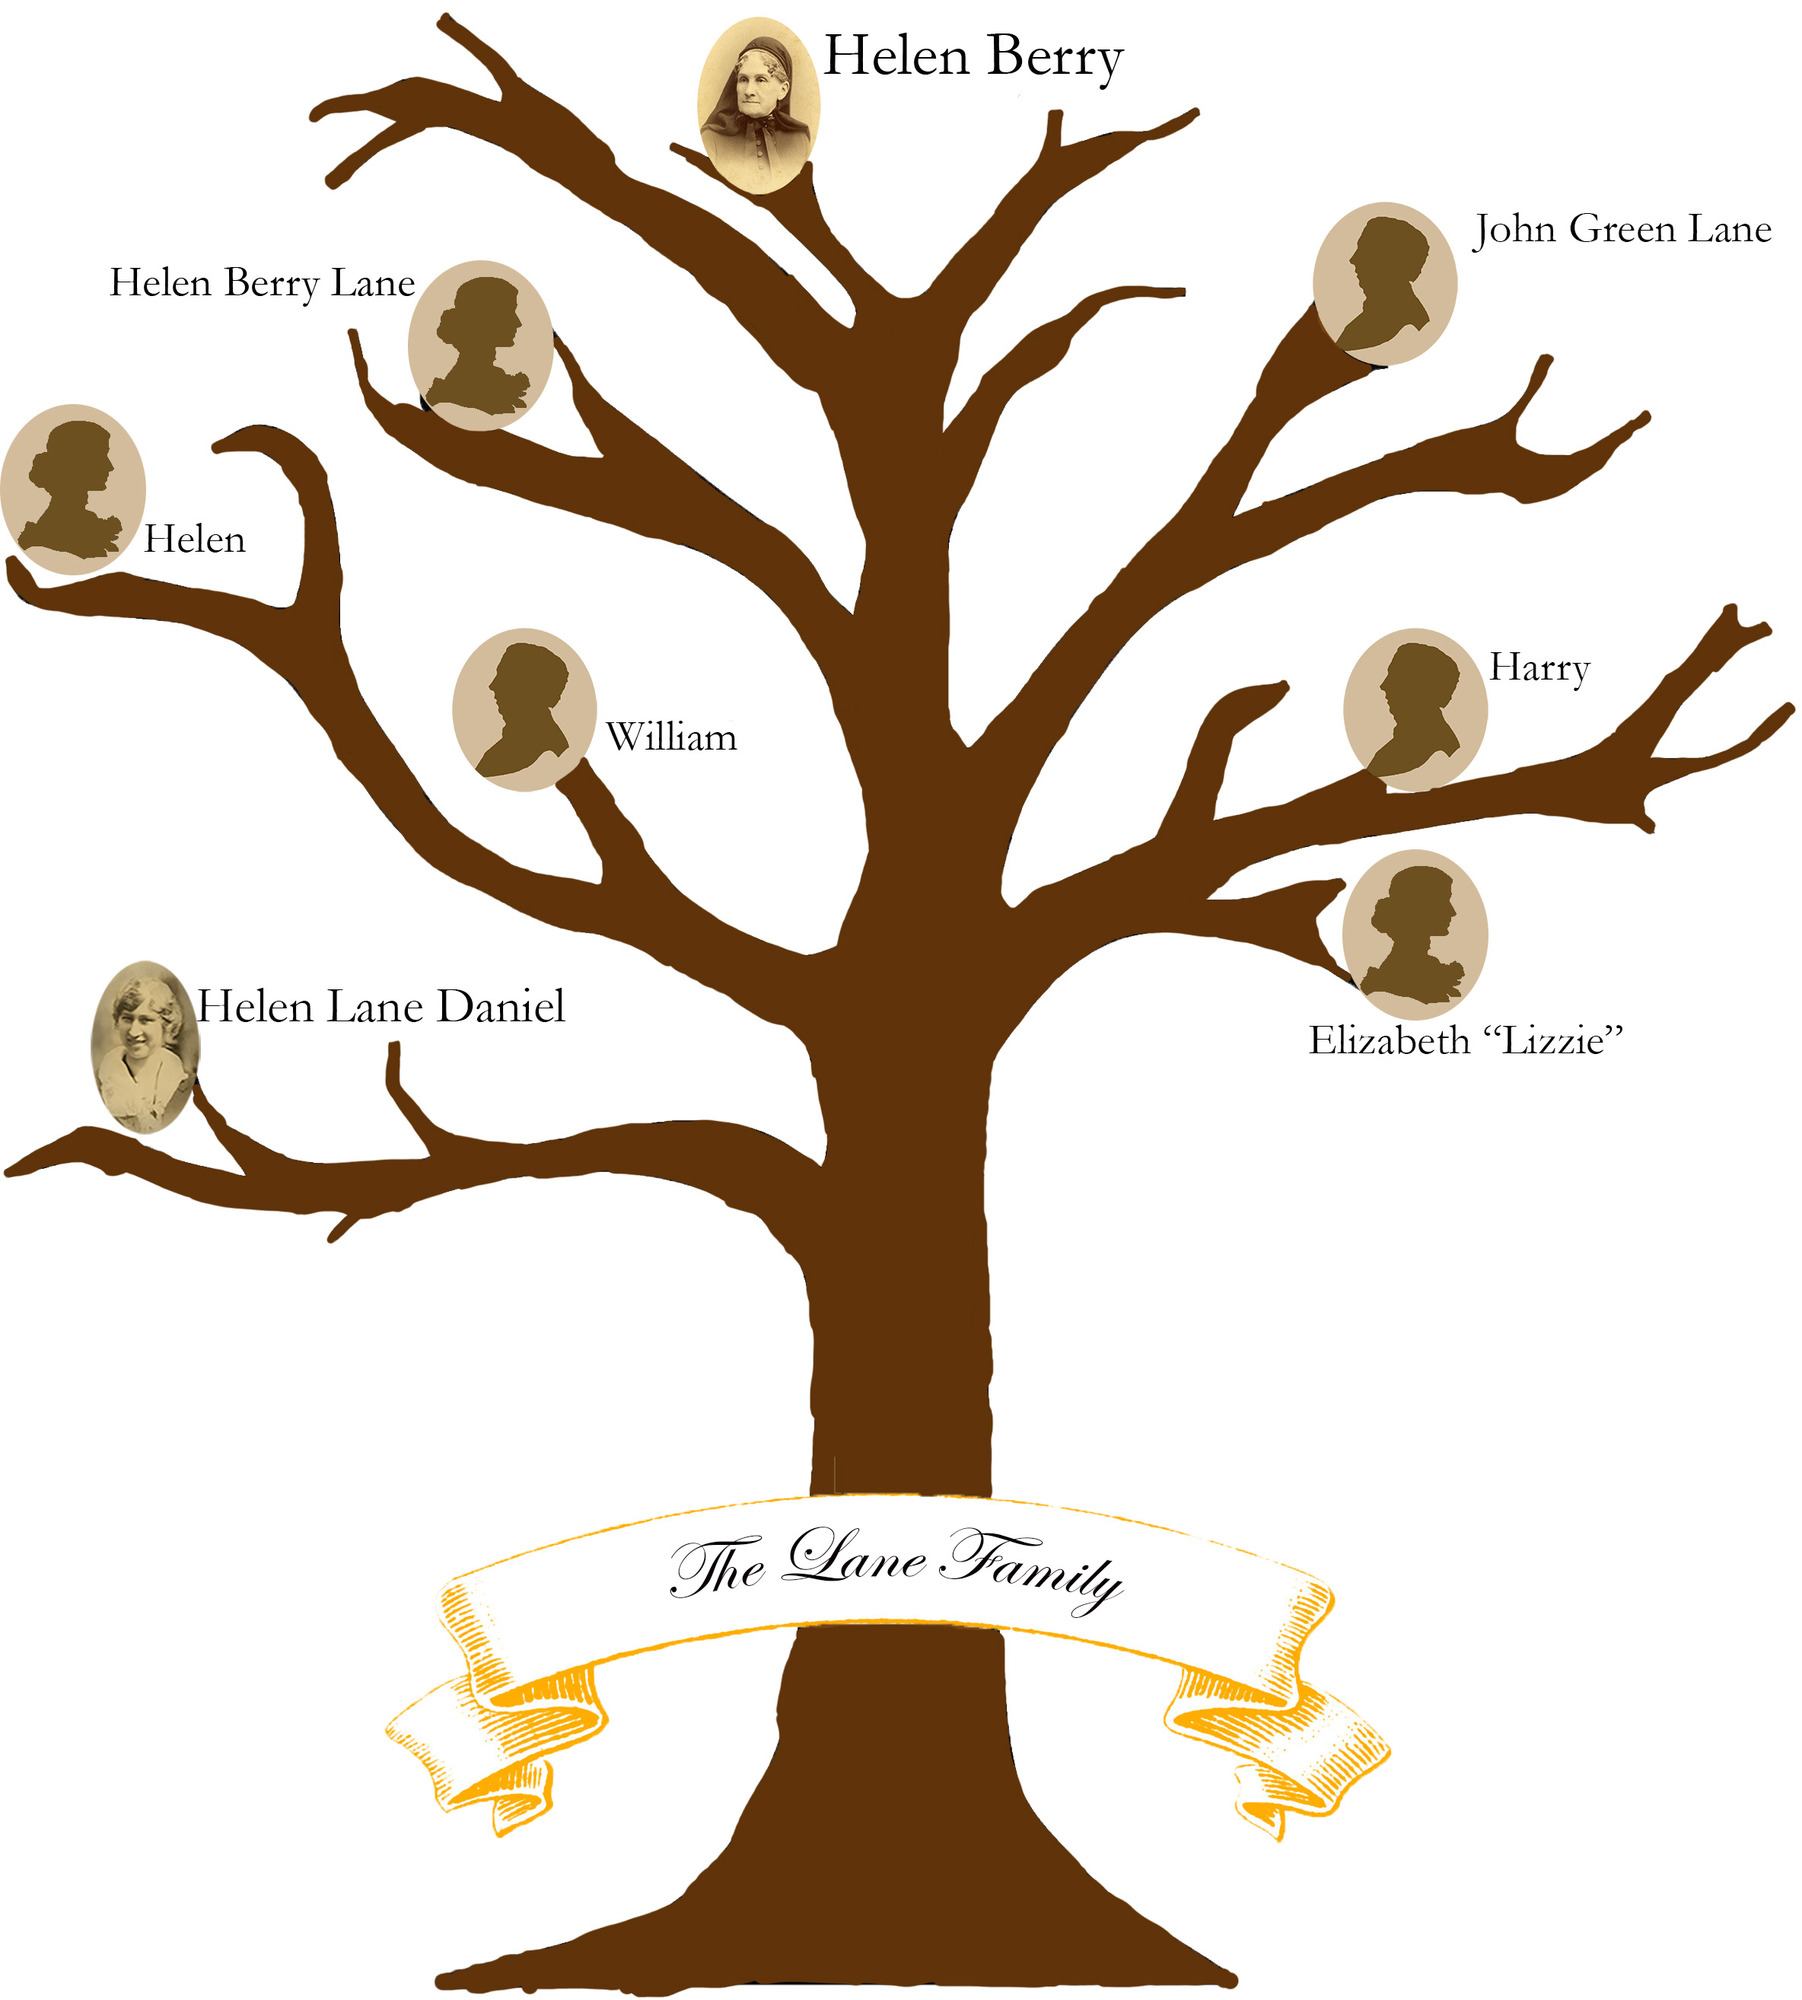 Lane Family Tree